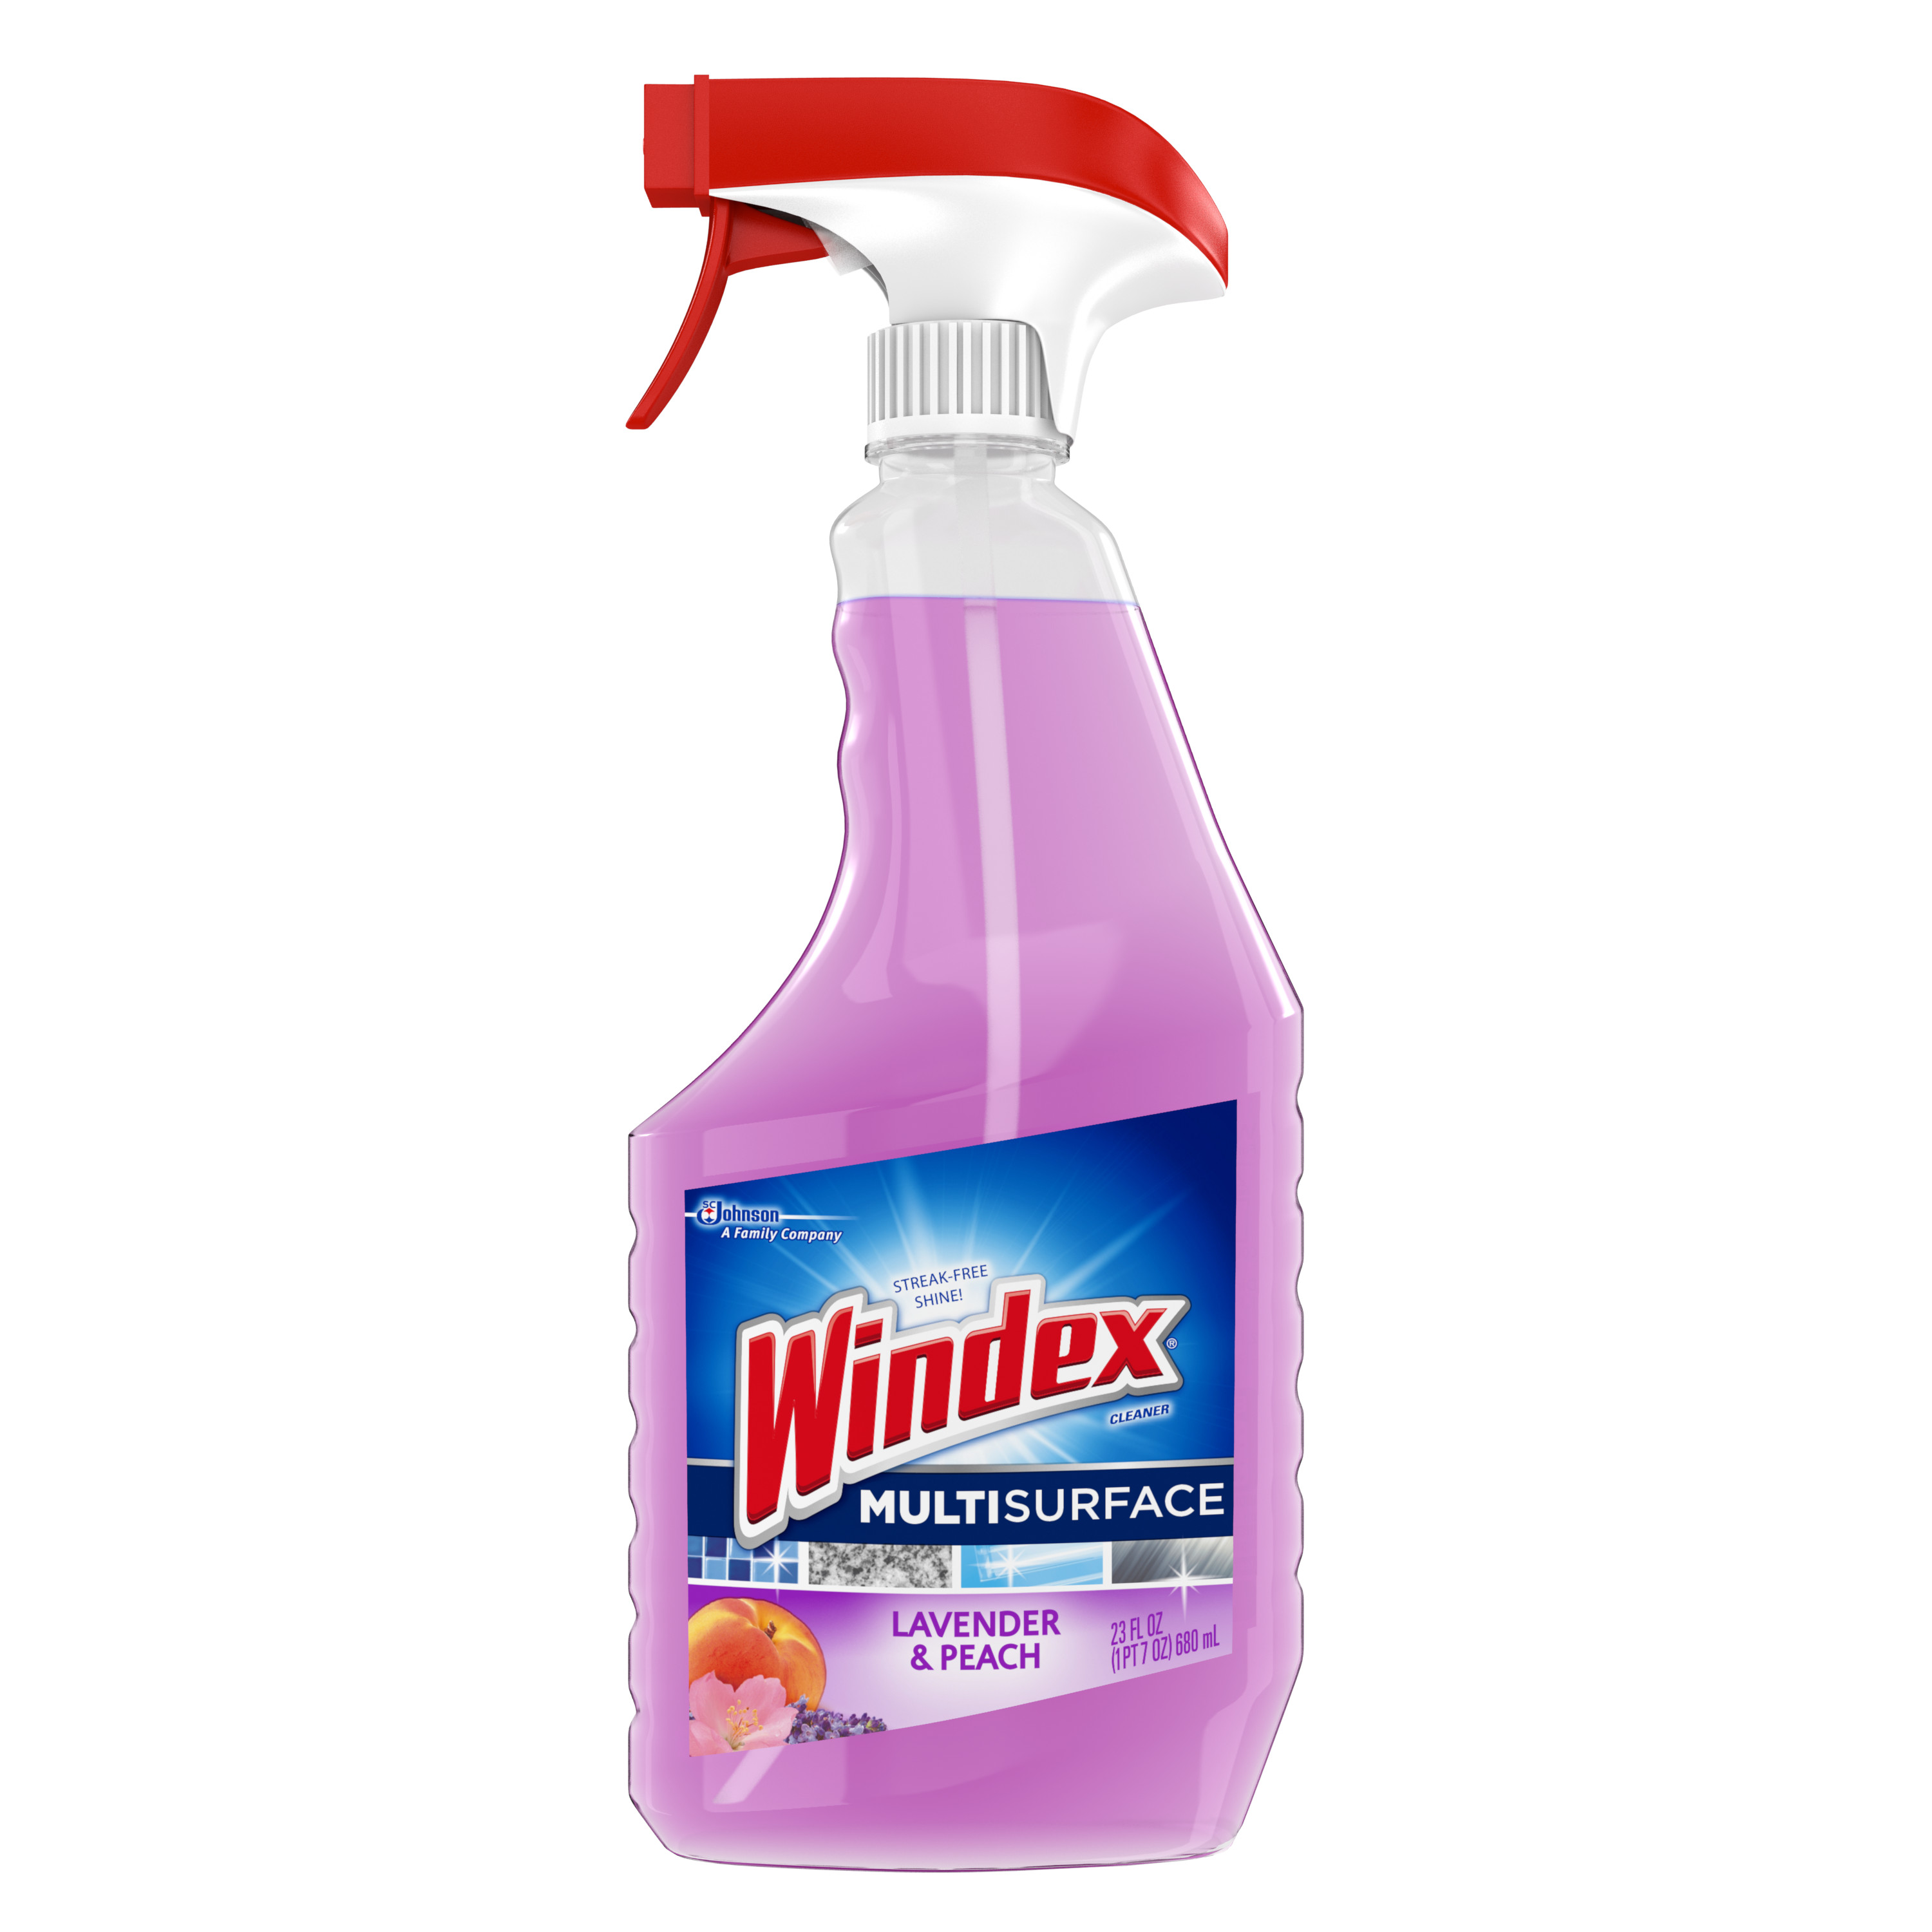 Windex Multi Surface Cleaner Trigger Lavender & Peach 23 Fluid